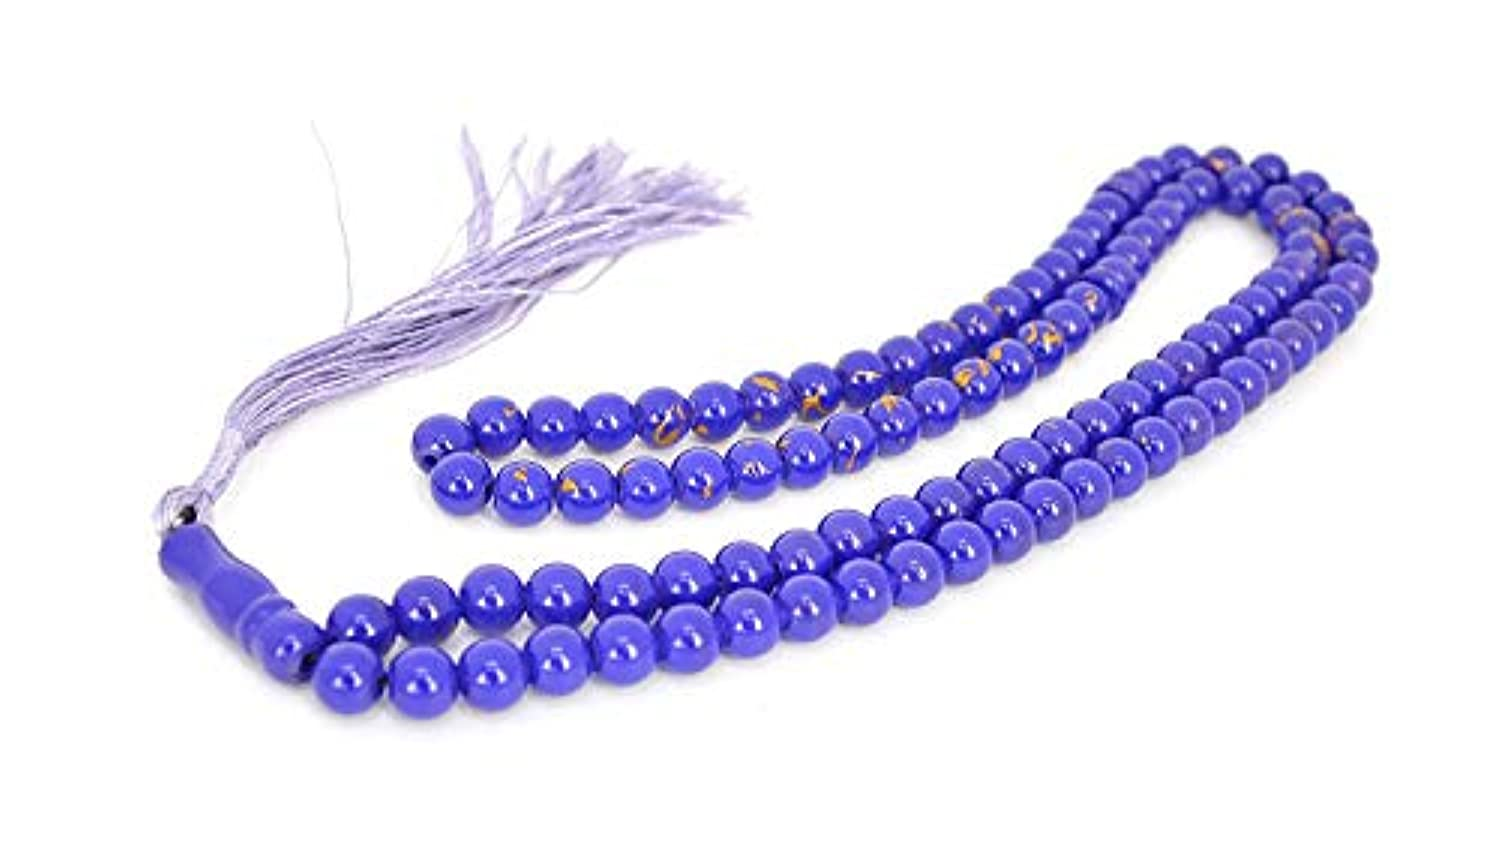 Muslim Bookmark - Islamic Prayer Beads | Misbaha Tasbih 99 Glass Bead Necklace